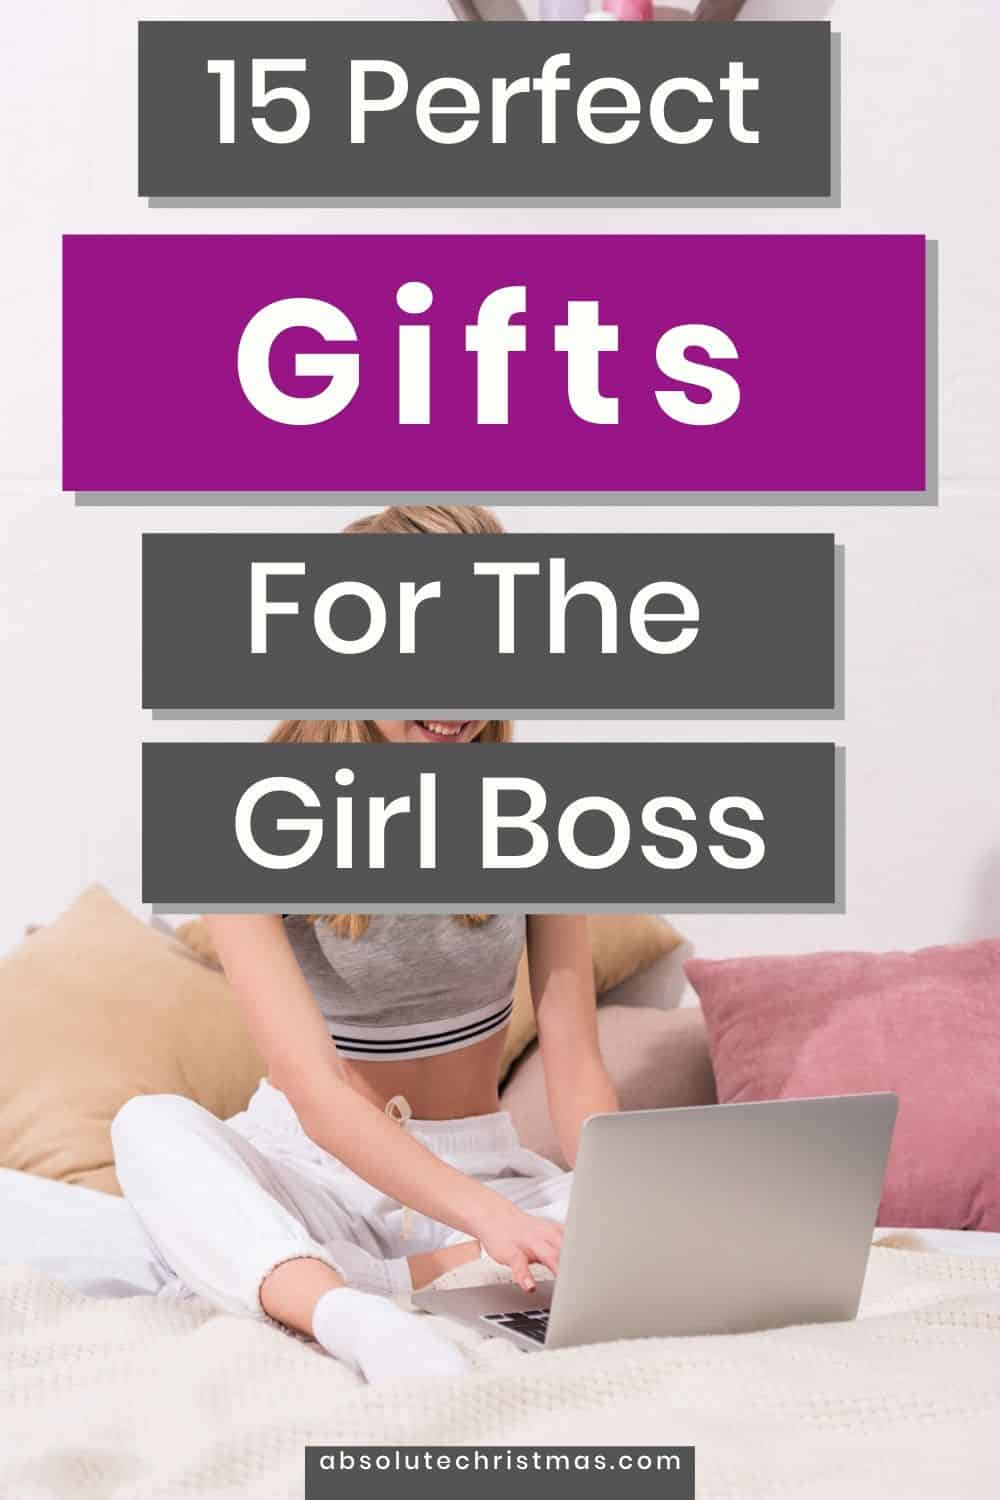 Gifts For The Girl Boss - Boss Lady Gift Guide